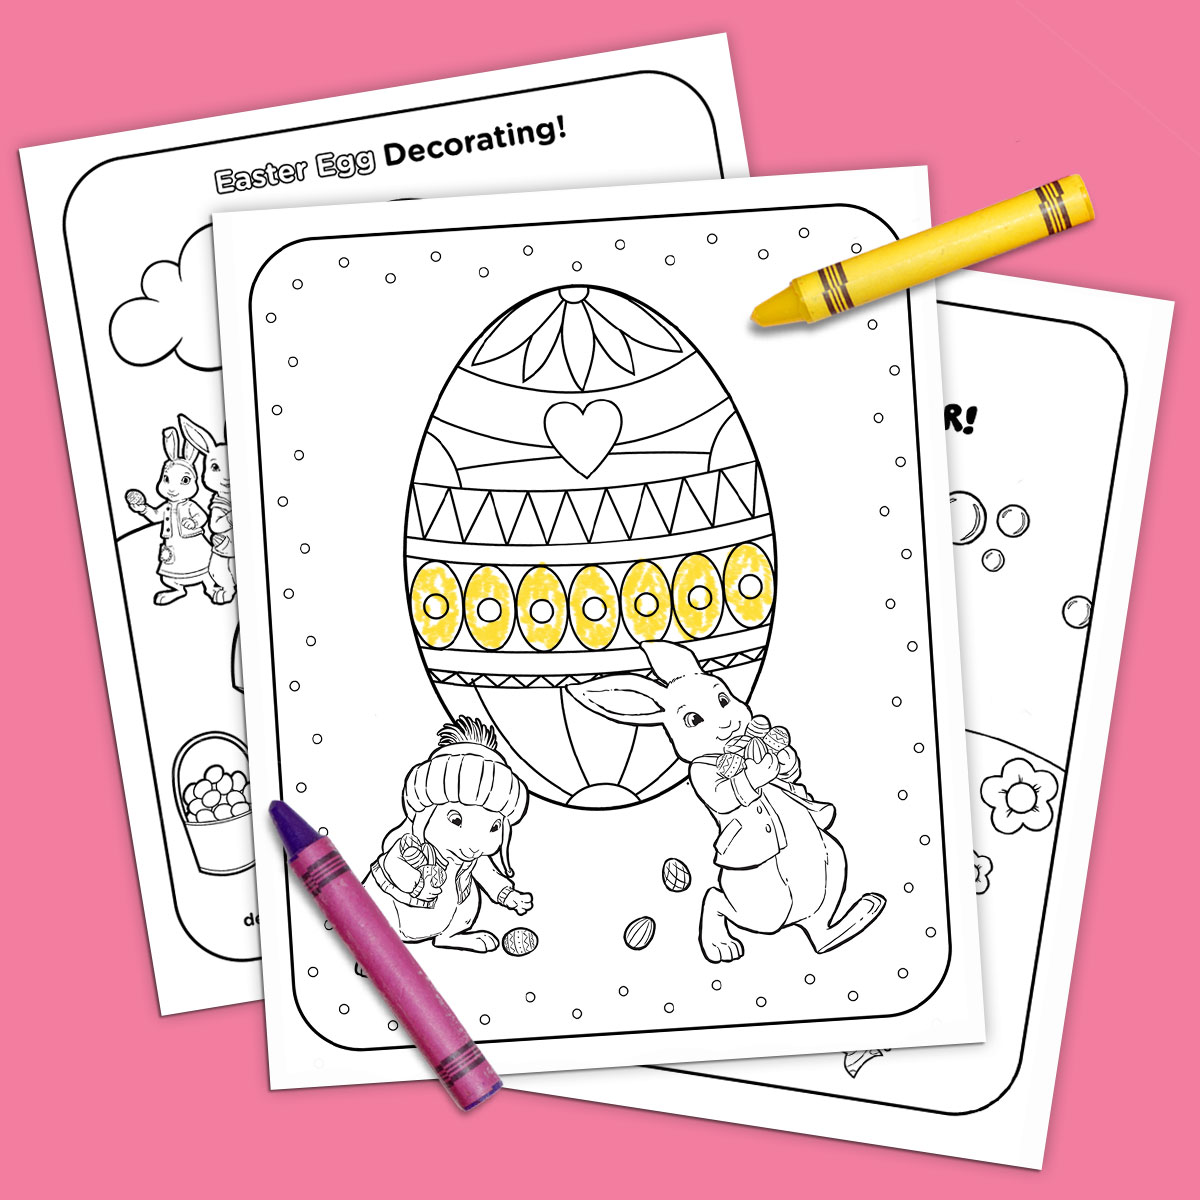 photograph about Easter Printable titled Nick Jr. Printable Easter Coloring Pack Nickelodeon Moms and dads